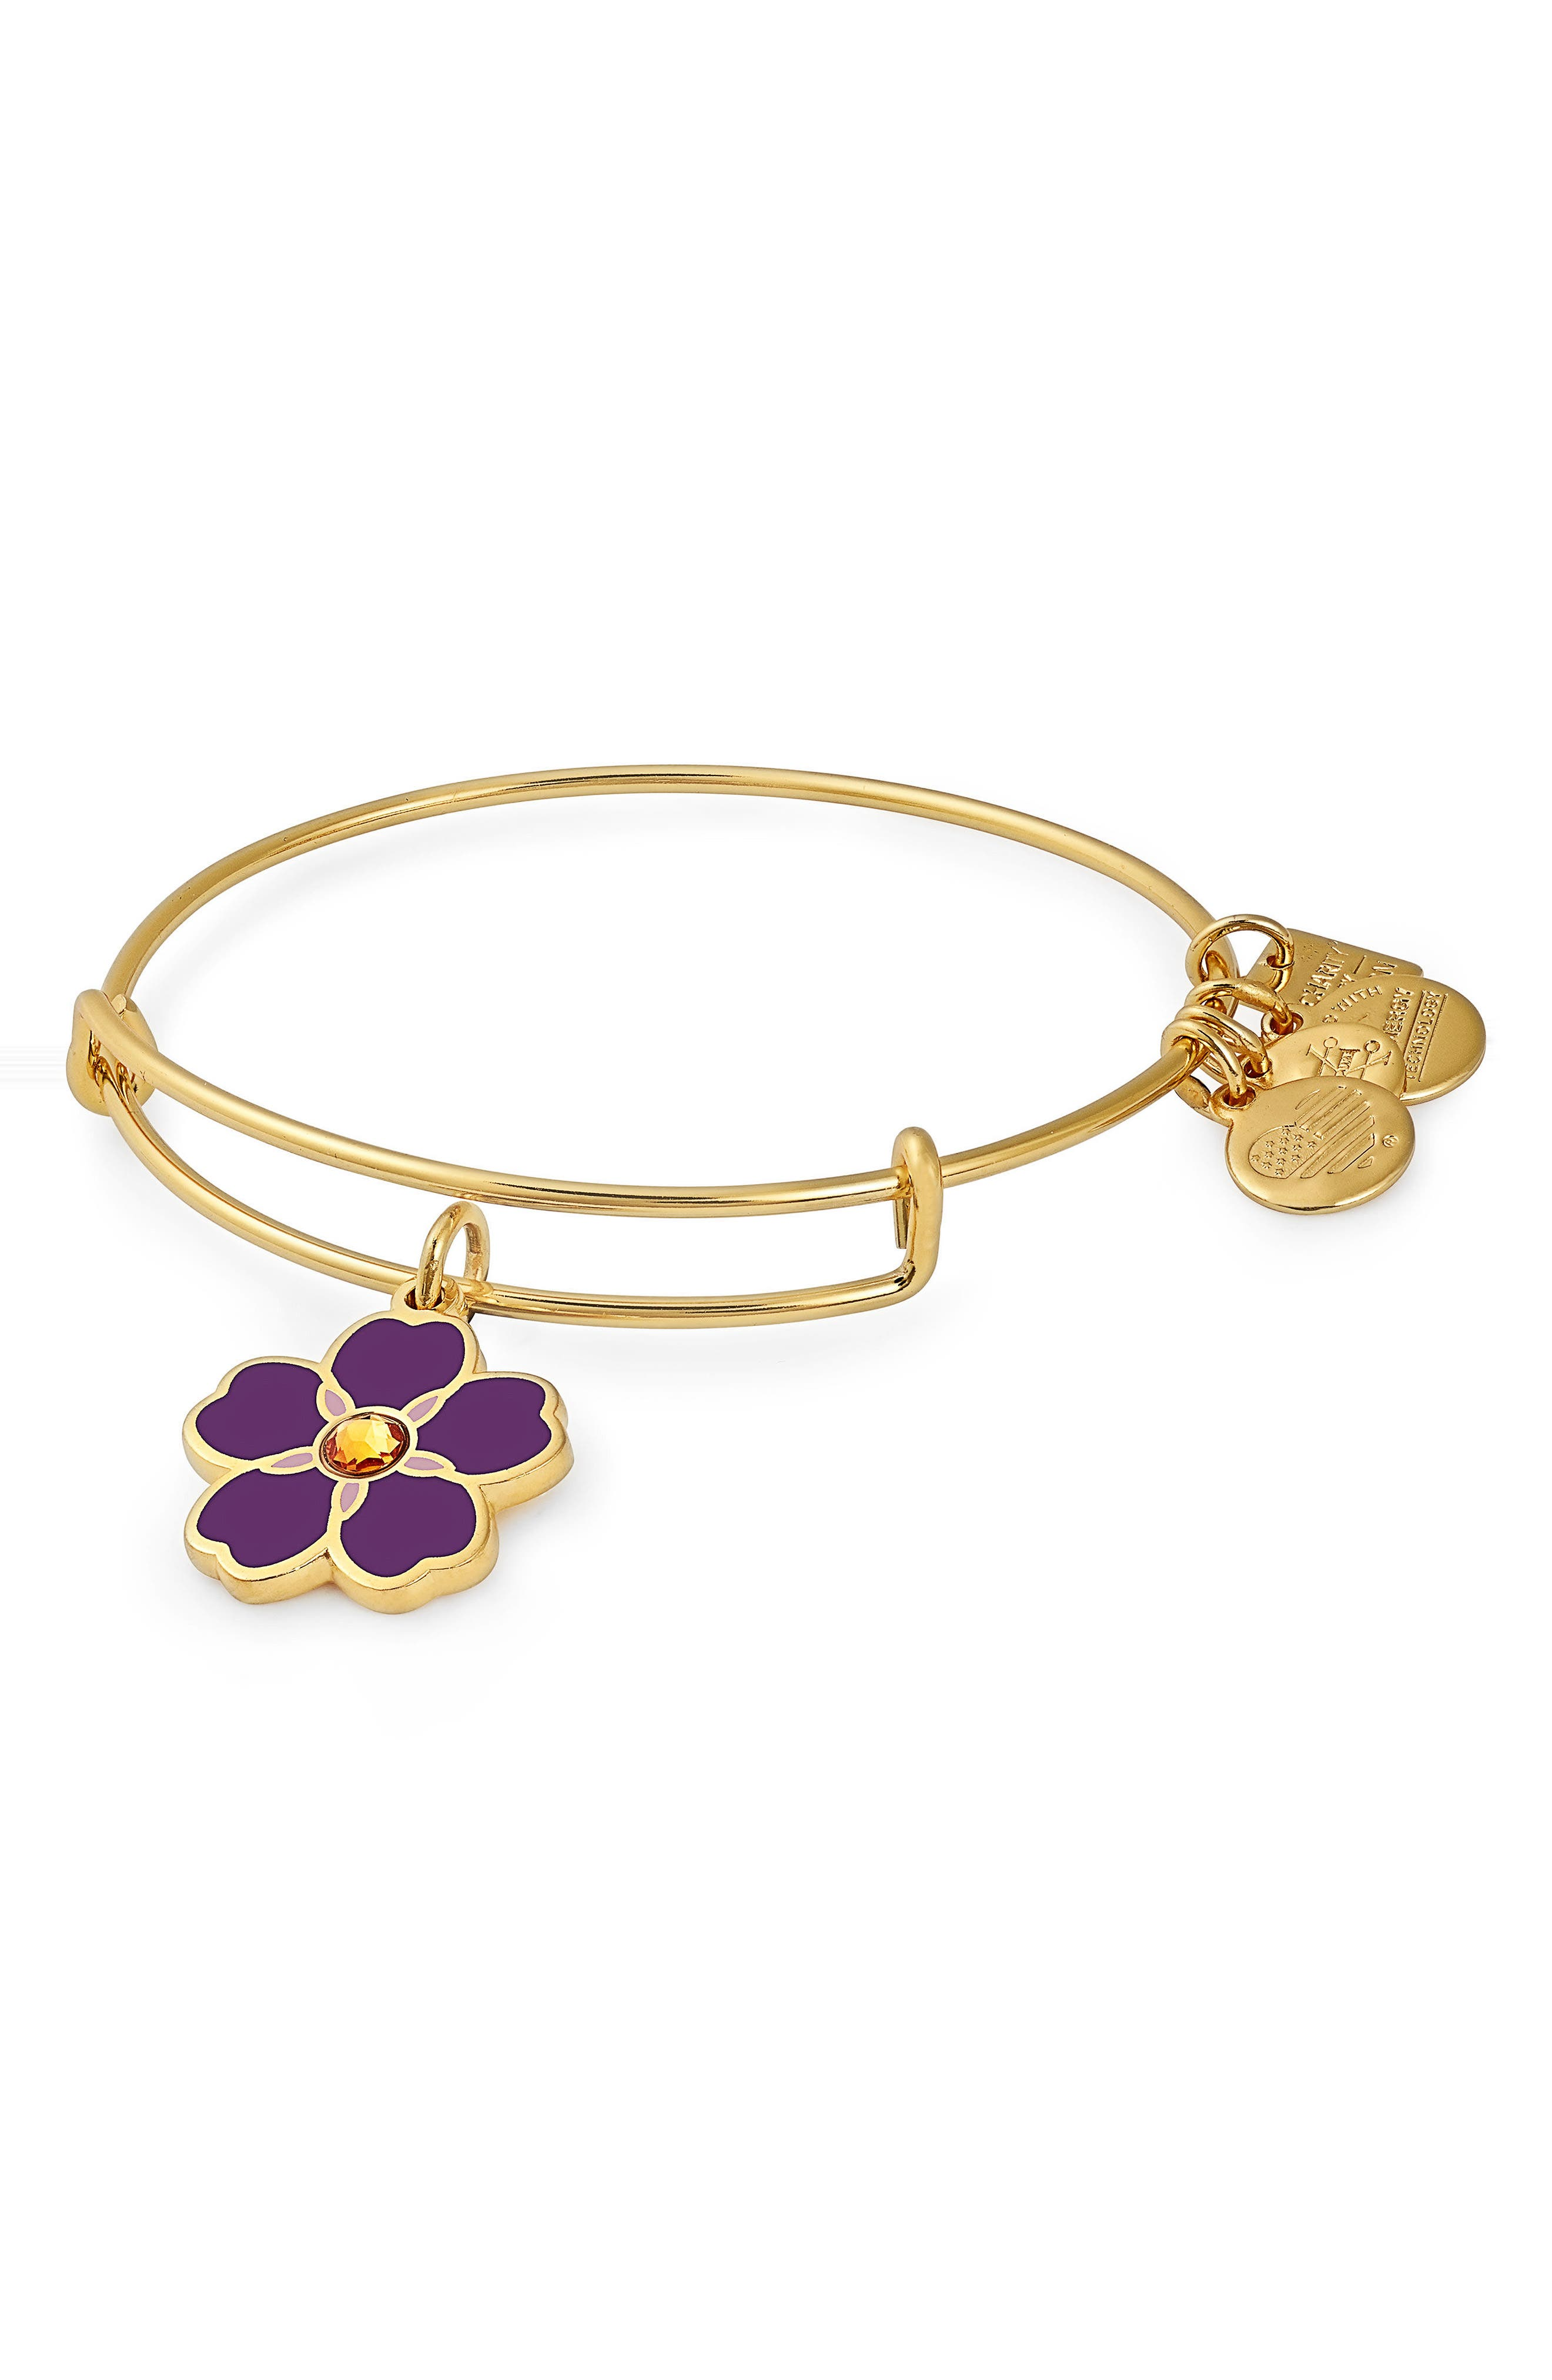 Charity by Design Forget Me Not Charm Bracelet,                         Main,                         color, GOLD